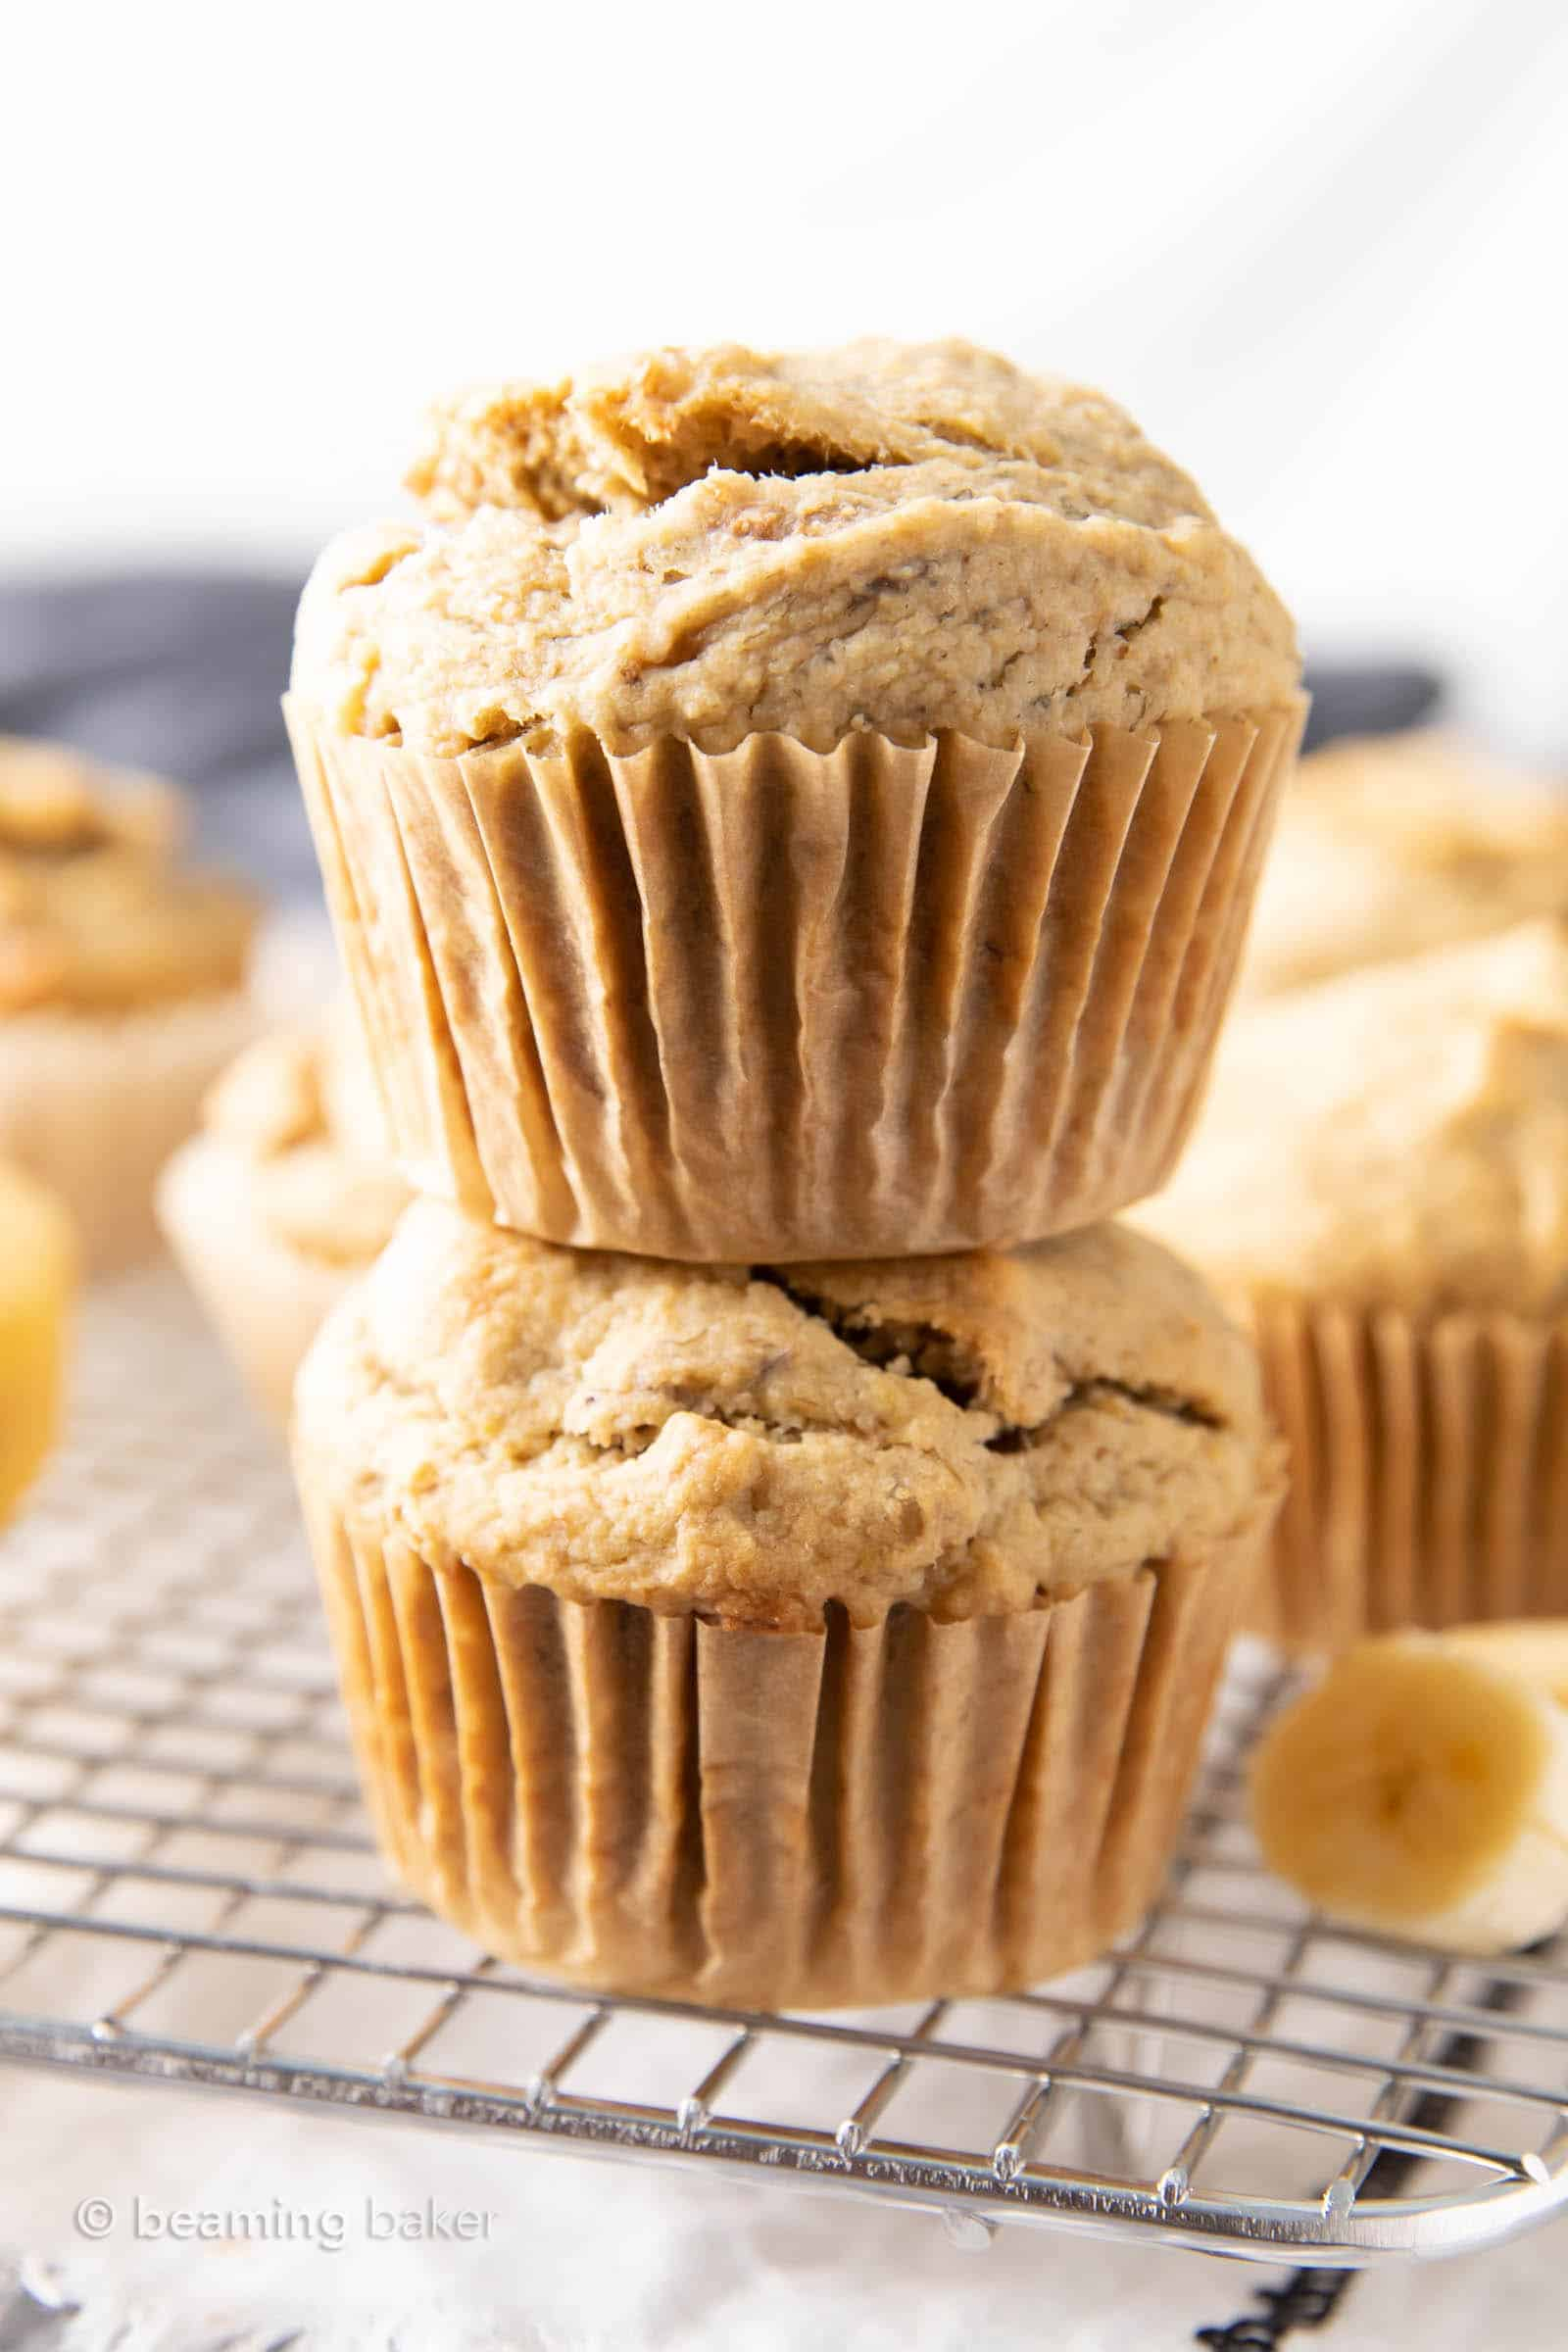 An easy recipe for Gluten Free Banana Muffins that are satisfyingly dense and rich, with just a bit of fluffiness and delicious medium sweet banana flavor. #GlutenFree #Banana #Muffins | Recipe at BeamingBaker.com